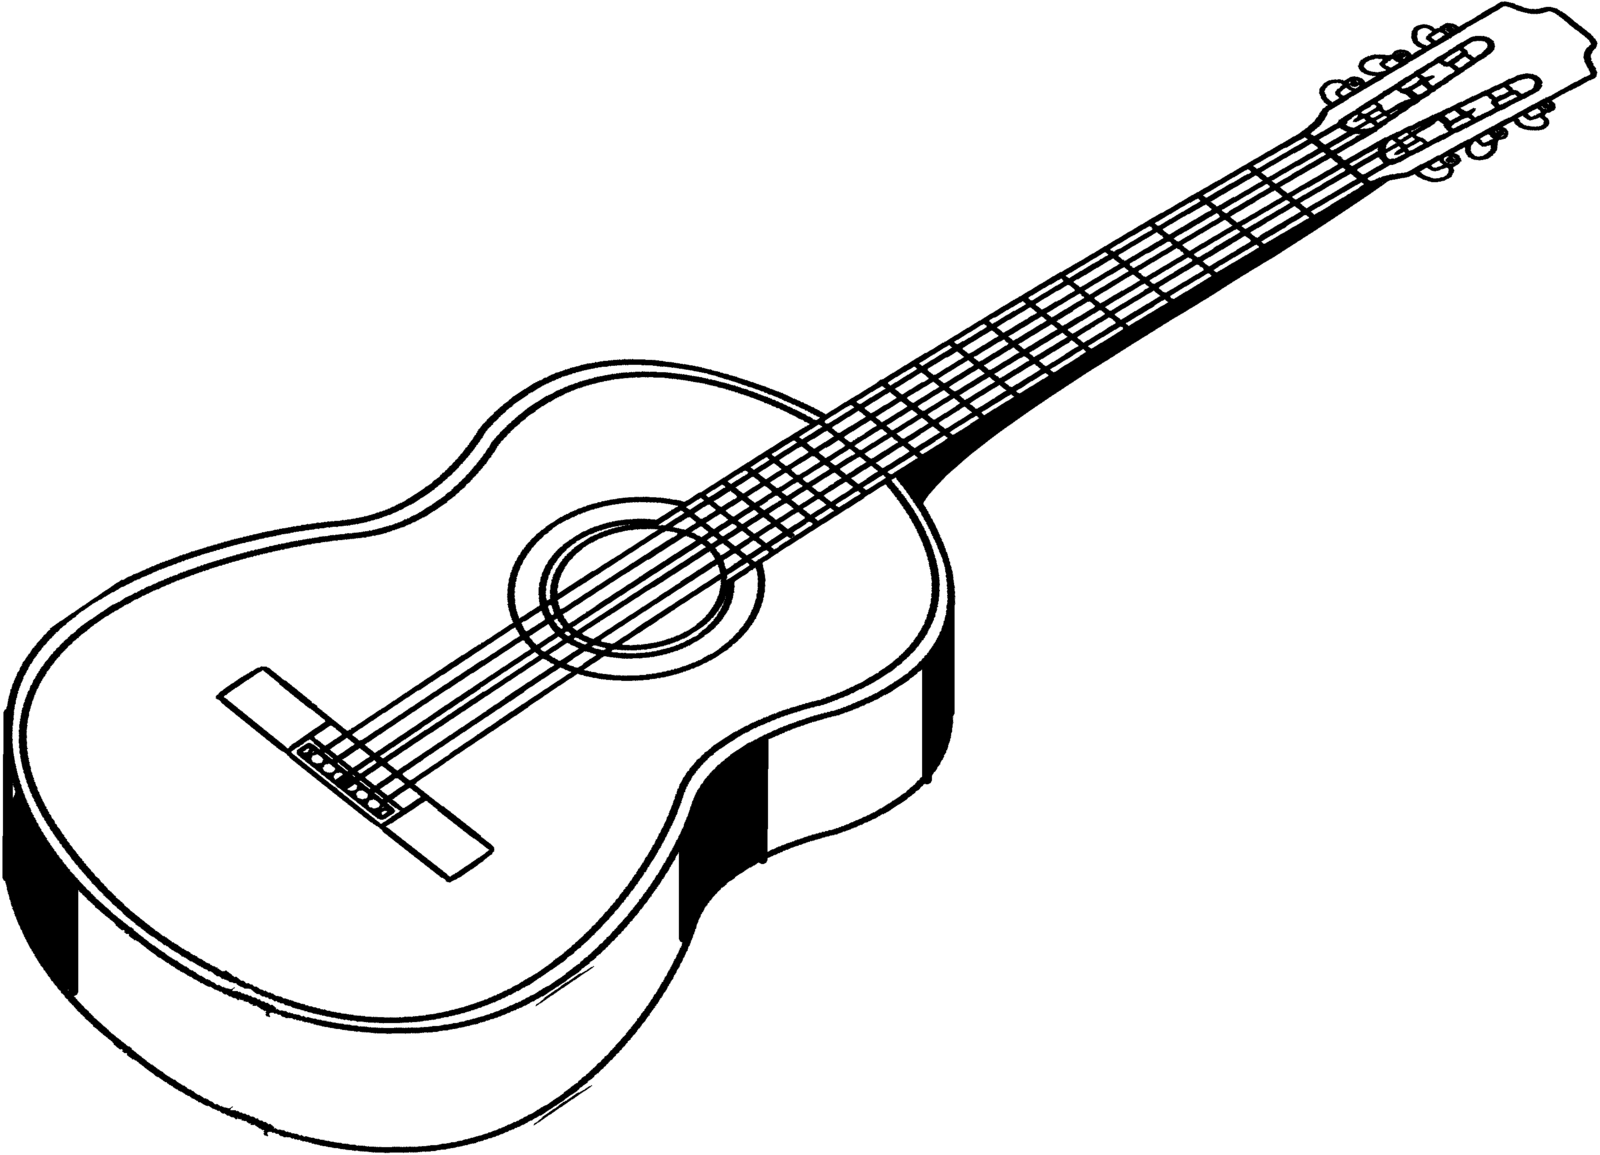 1600x1155 Line Art Of An Acoustic Guitar By IHCOYC On DeviantArt